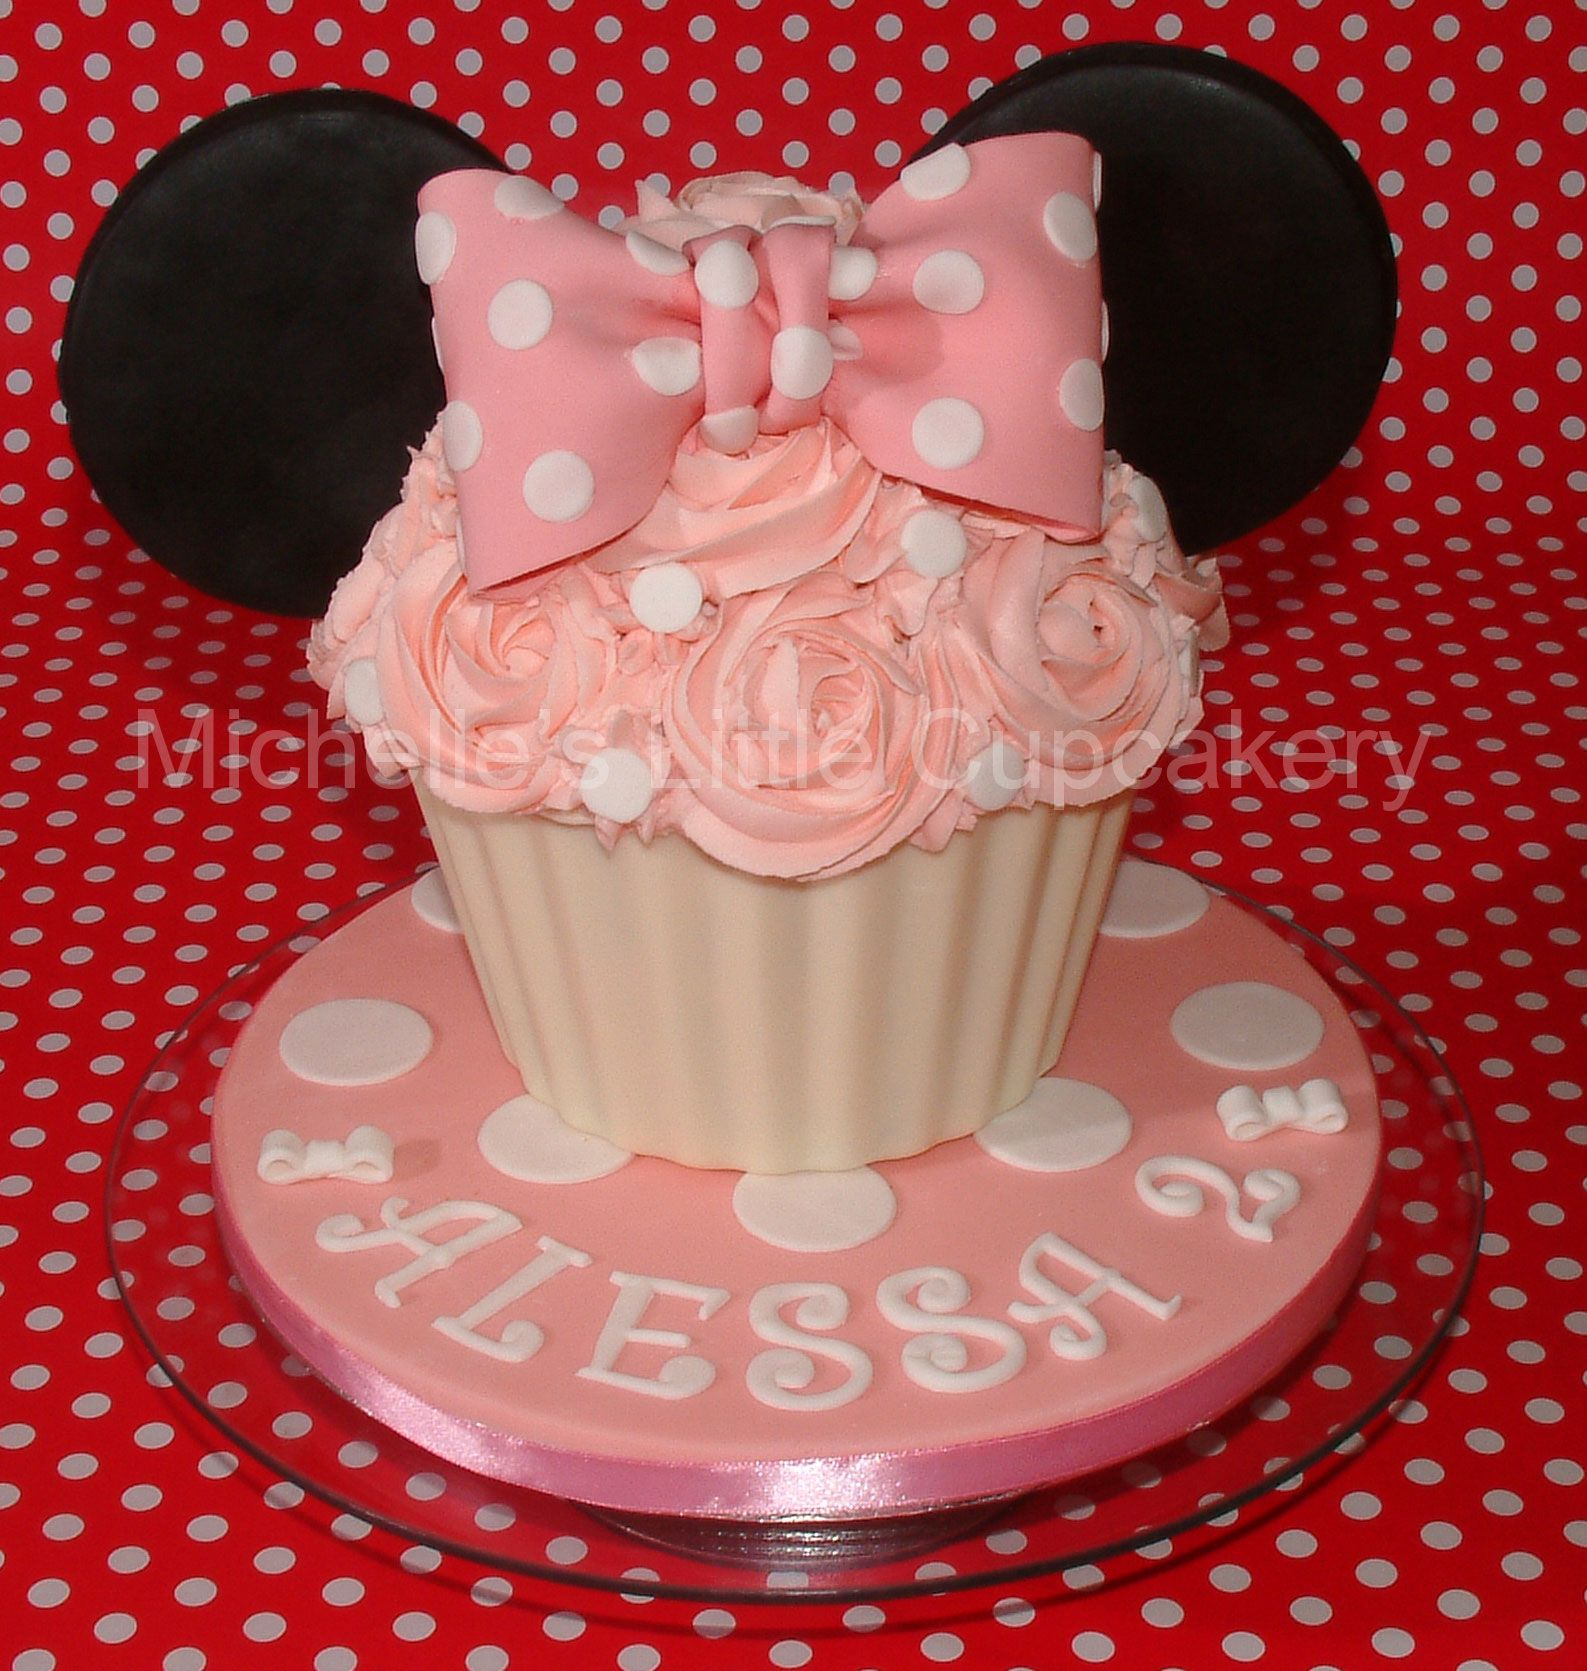 Disney Themed Cakes Minnie Mouse inspired giant lemon cupcake